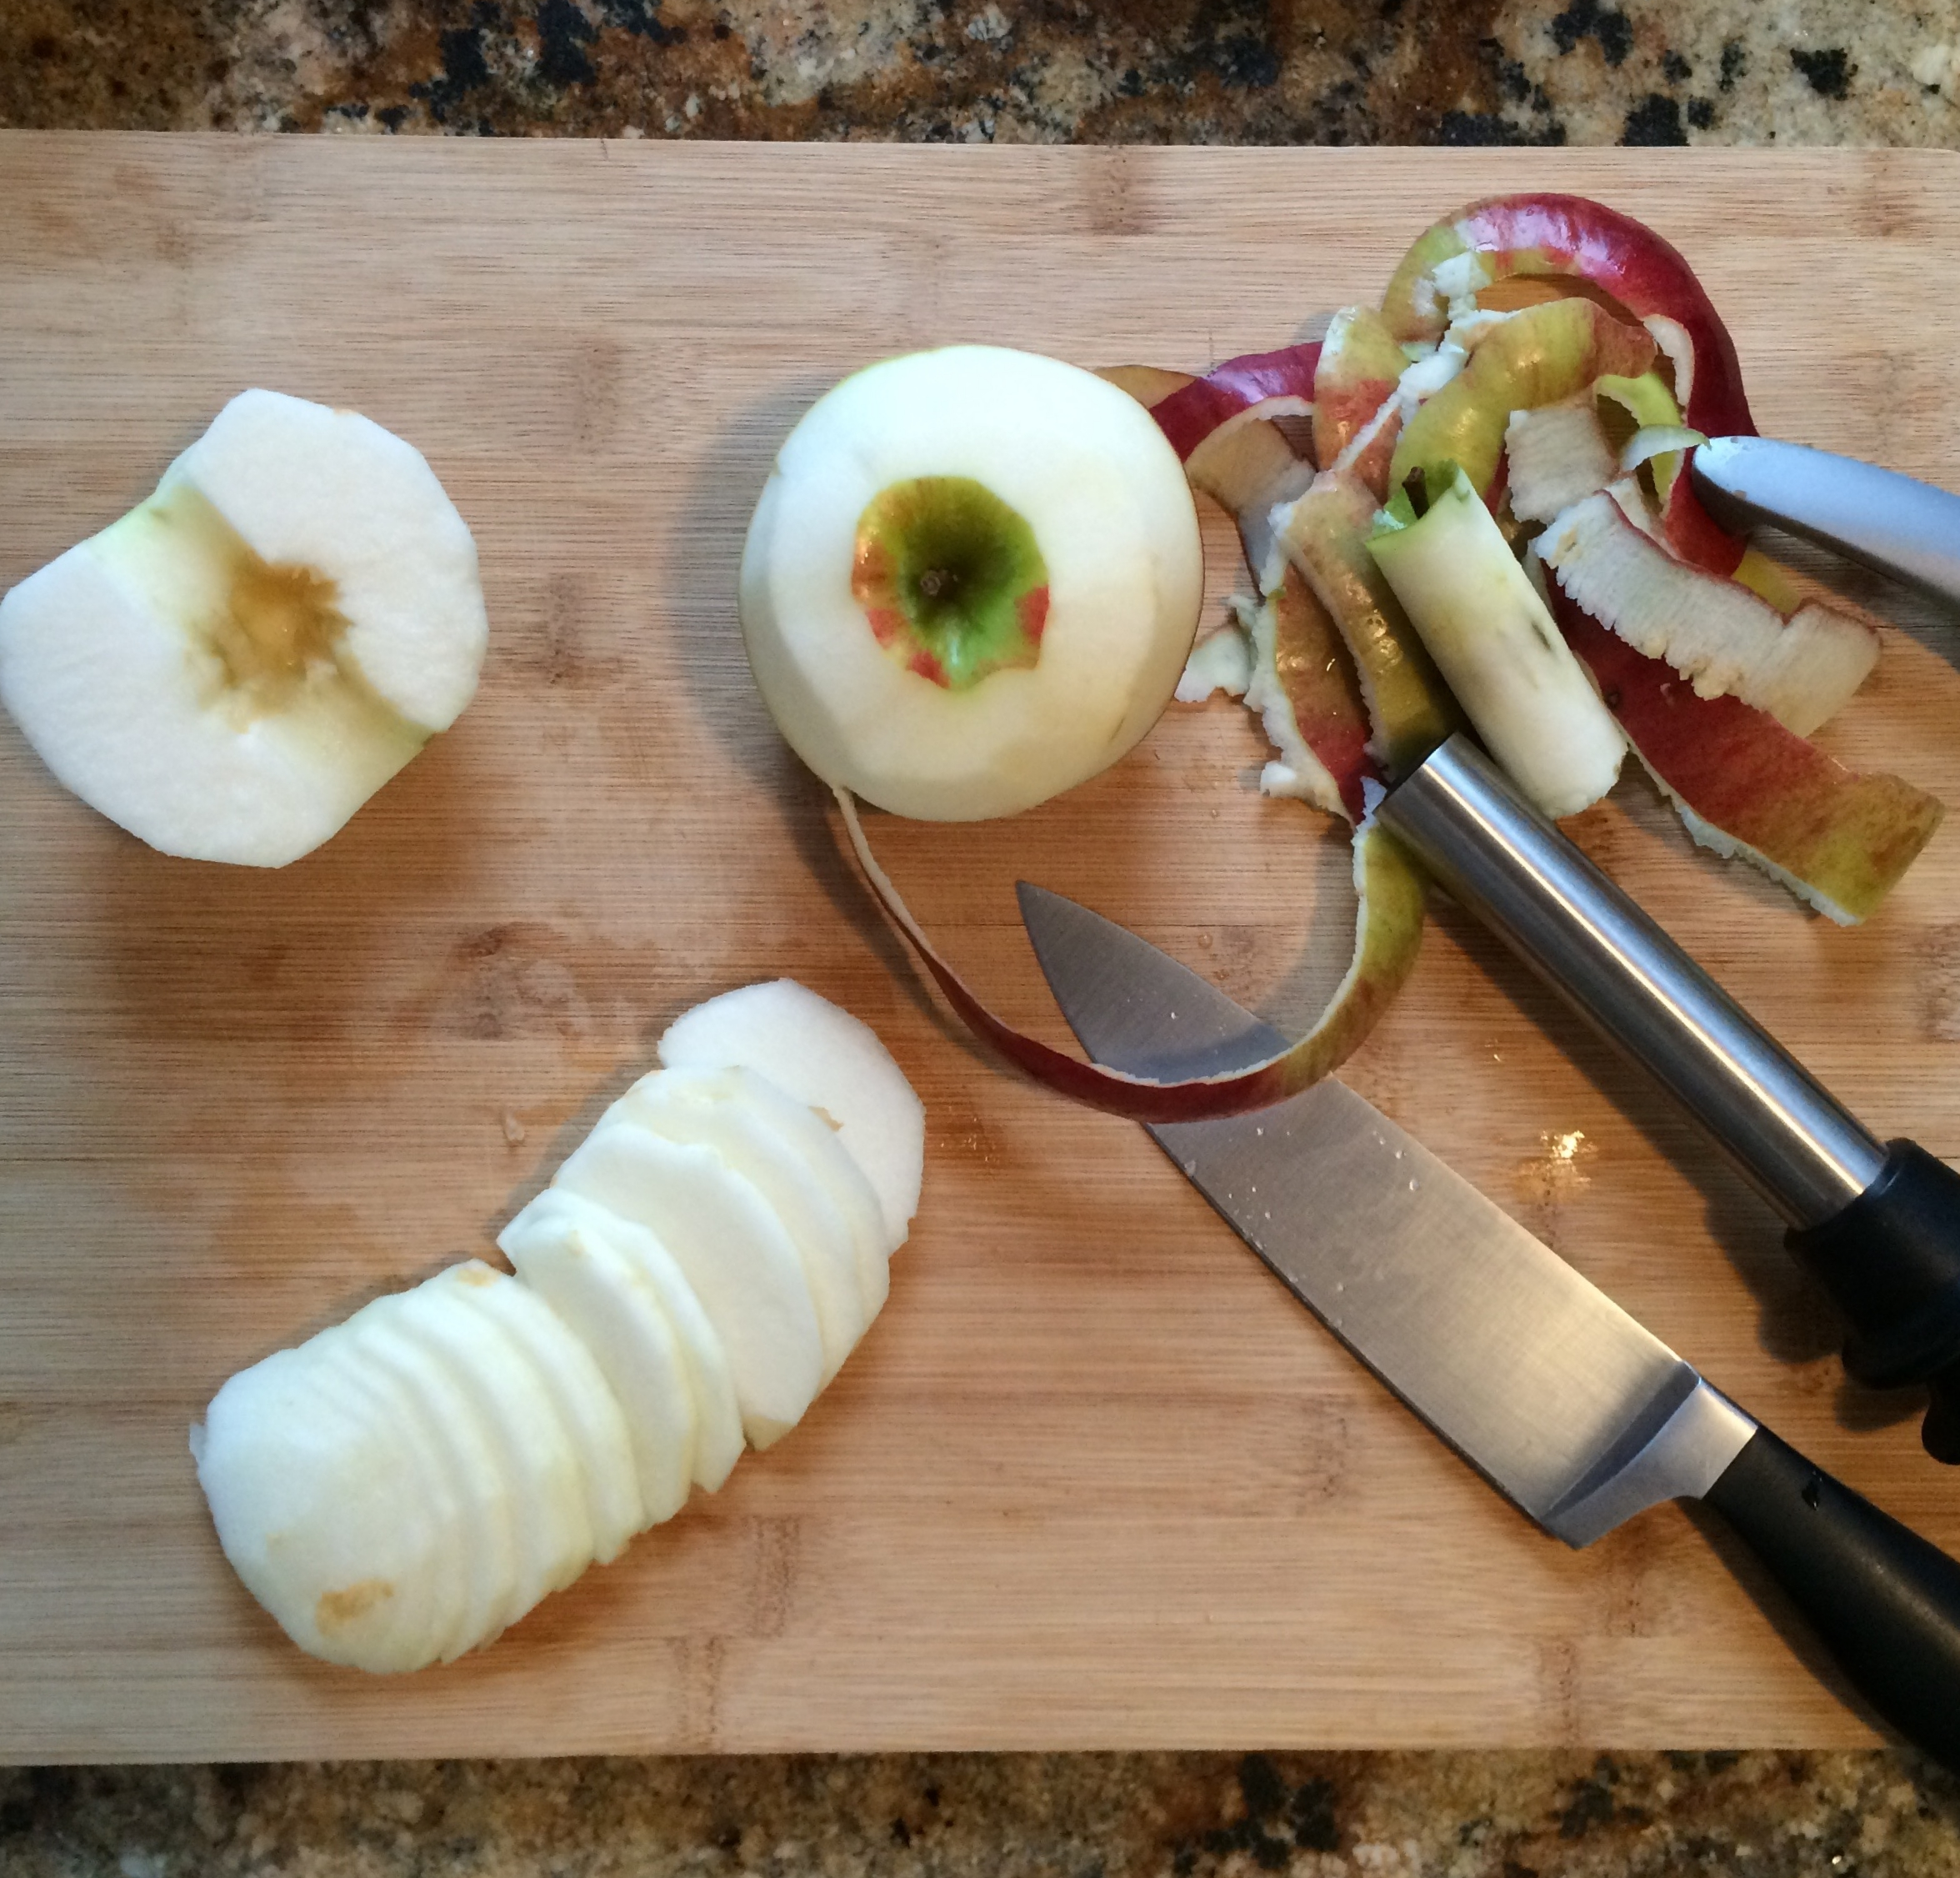 Prepping apples slices